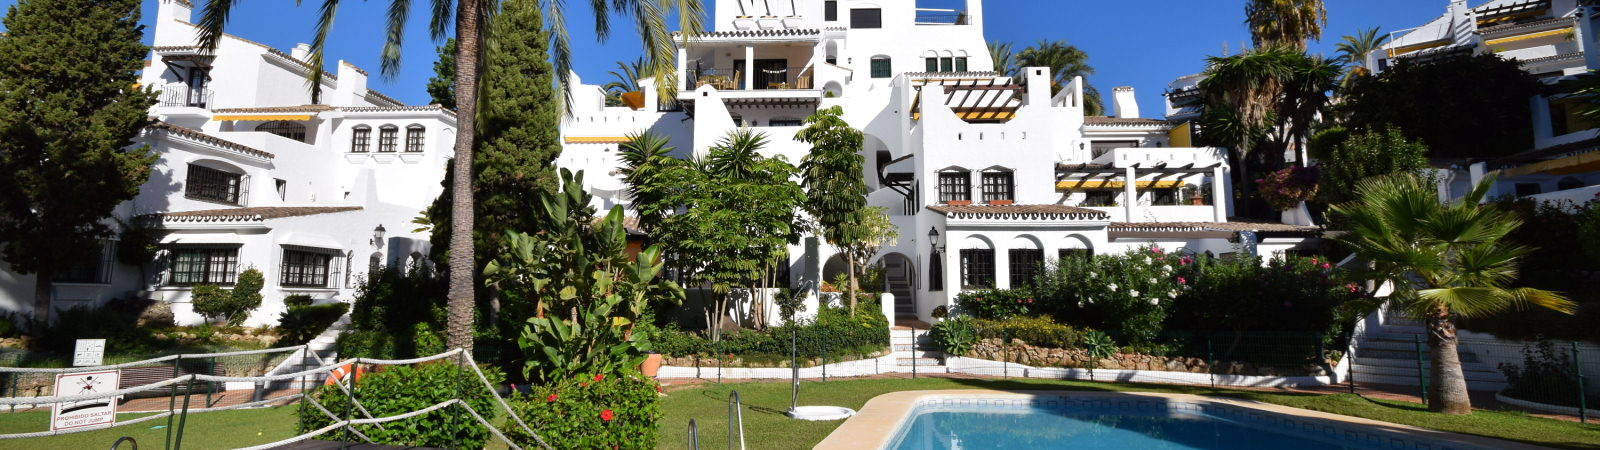 Aldea Blanca Property for Sale